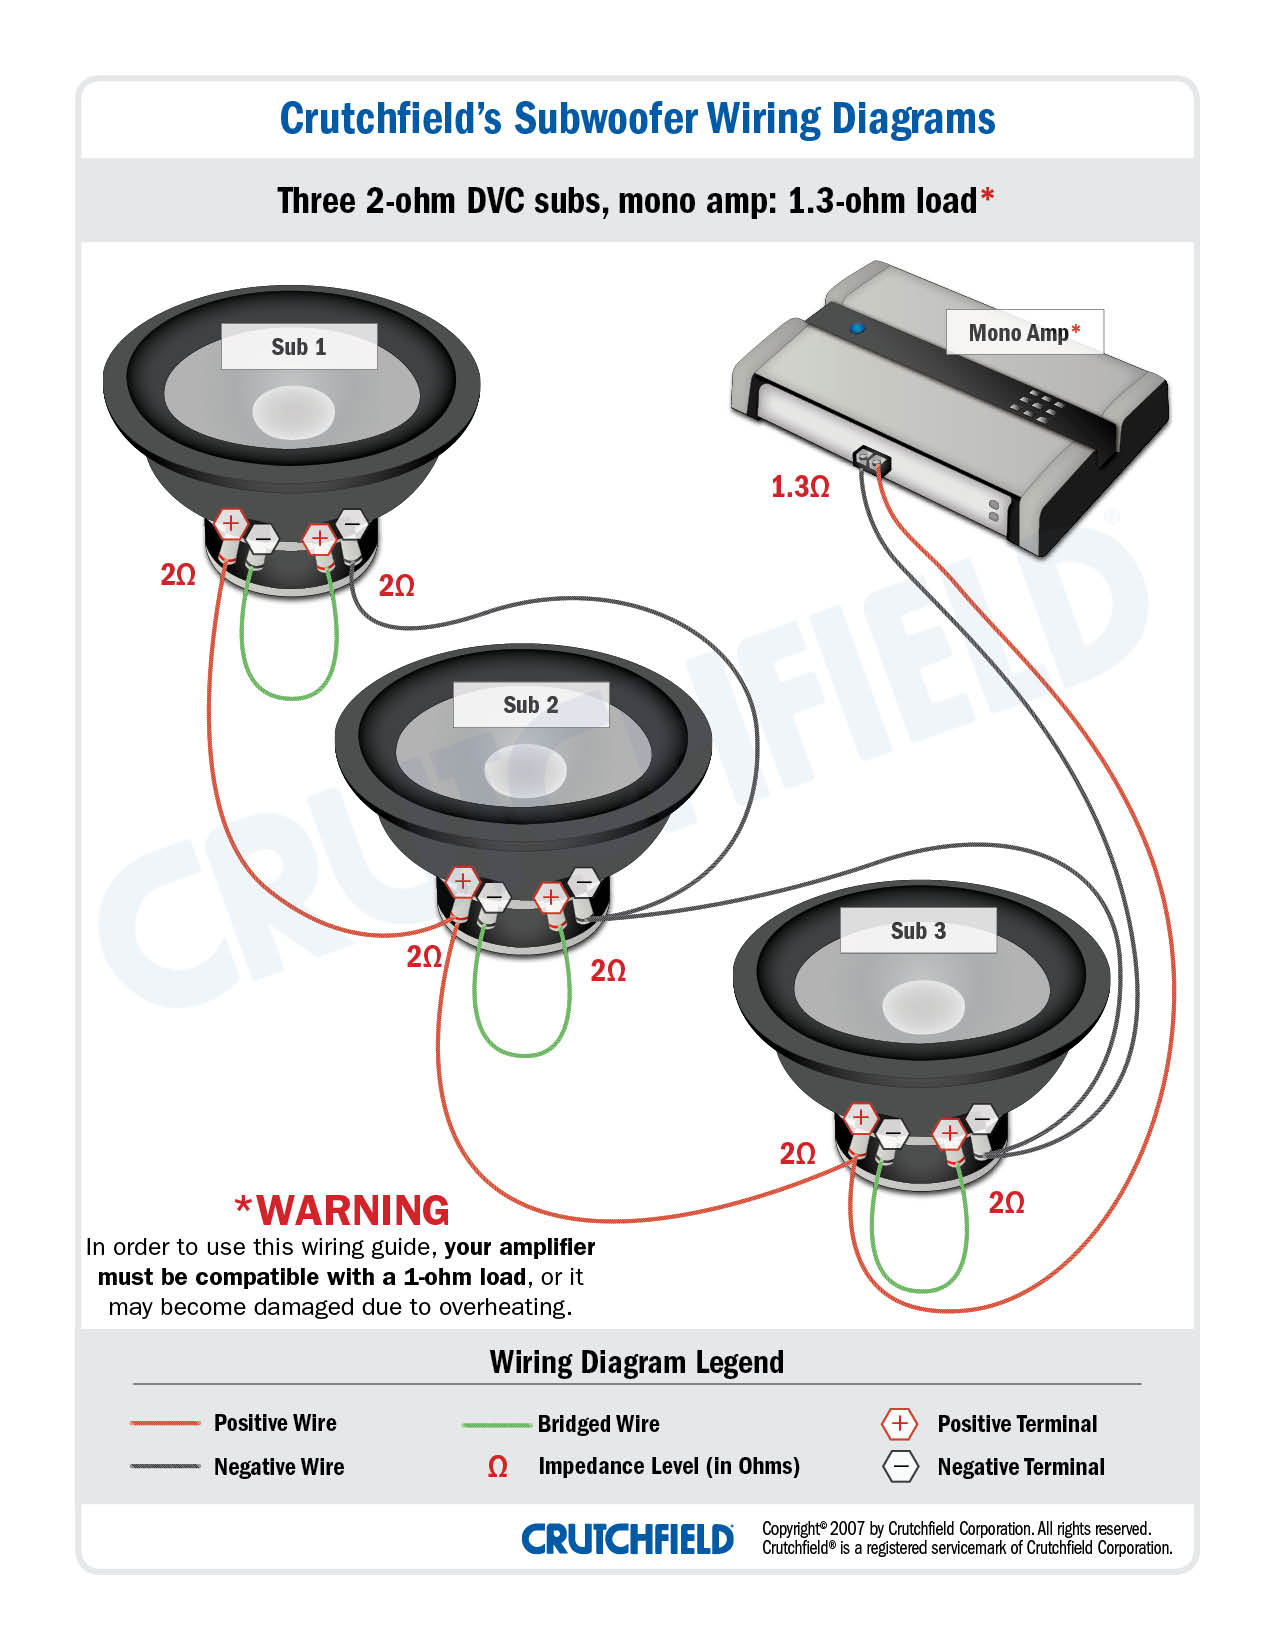 3 DVC 2 ohm mono low imp audi subwoofer wiring diagram audi wiring diagrams collection  at edmiracle.co